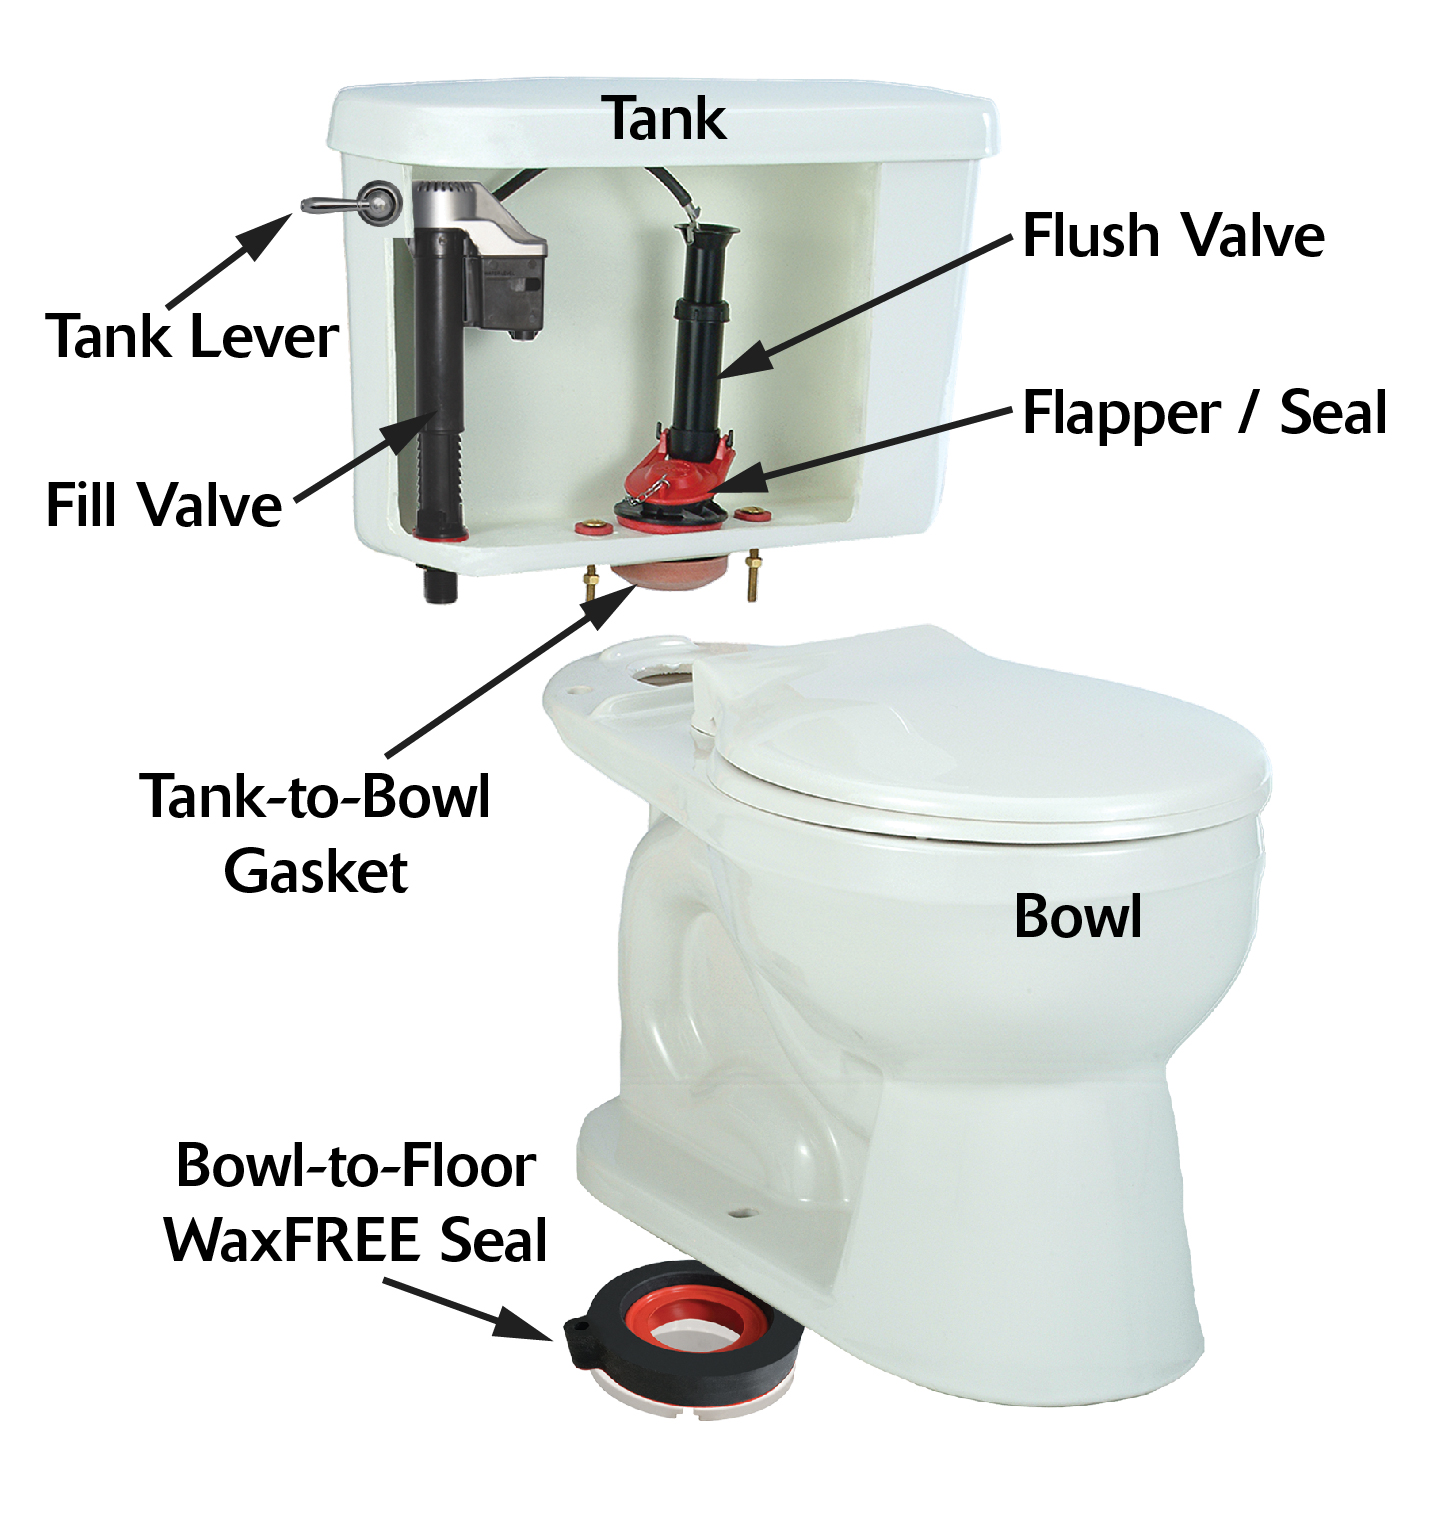 How does a Toilet Work | Anatomy of a Toilet | Korky Toilet ...